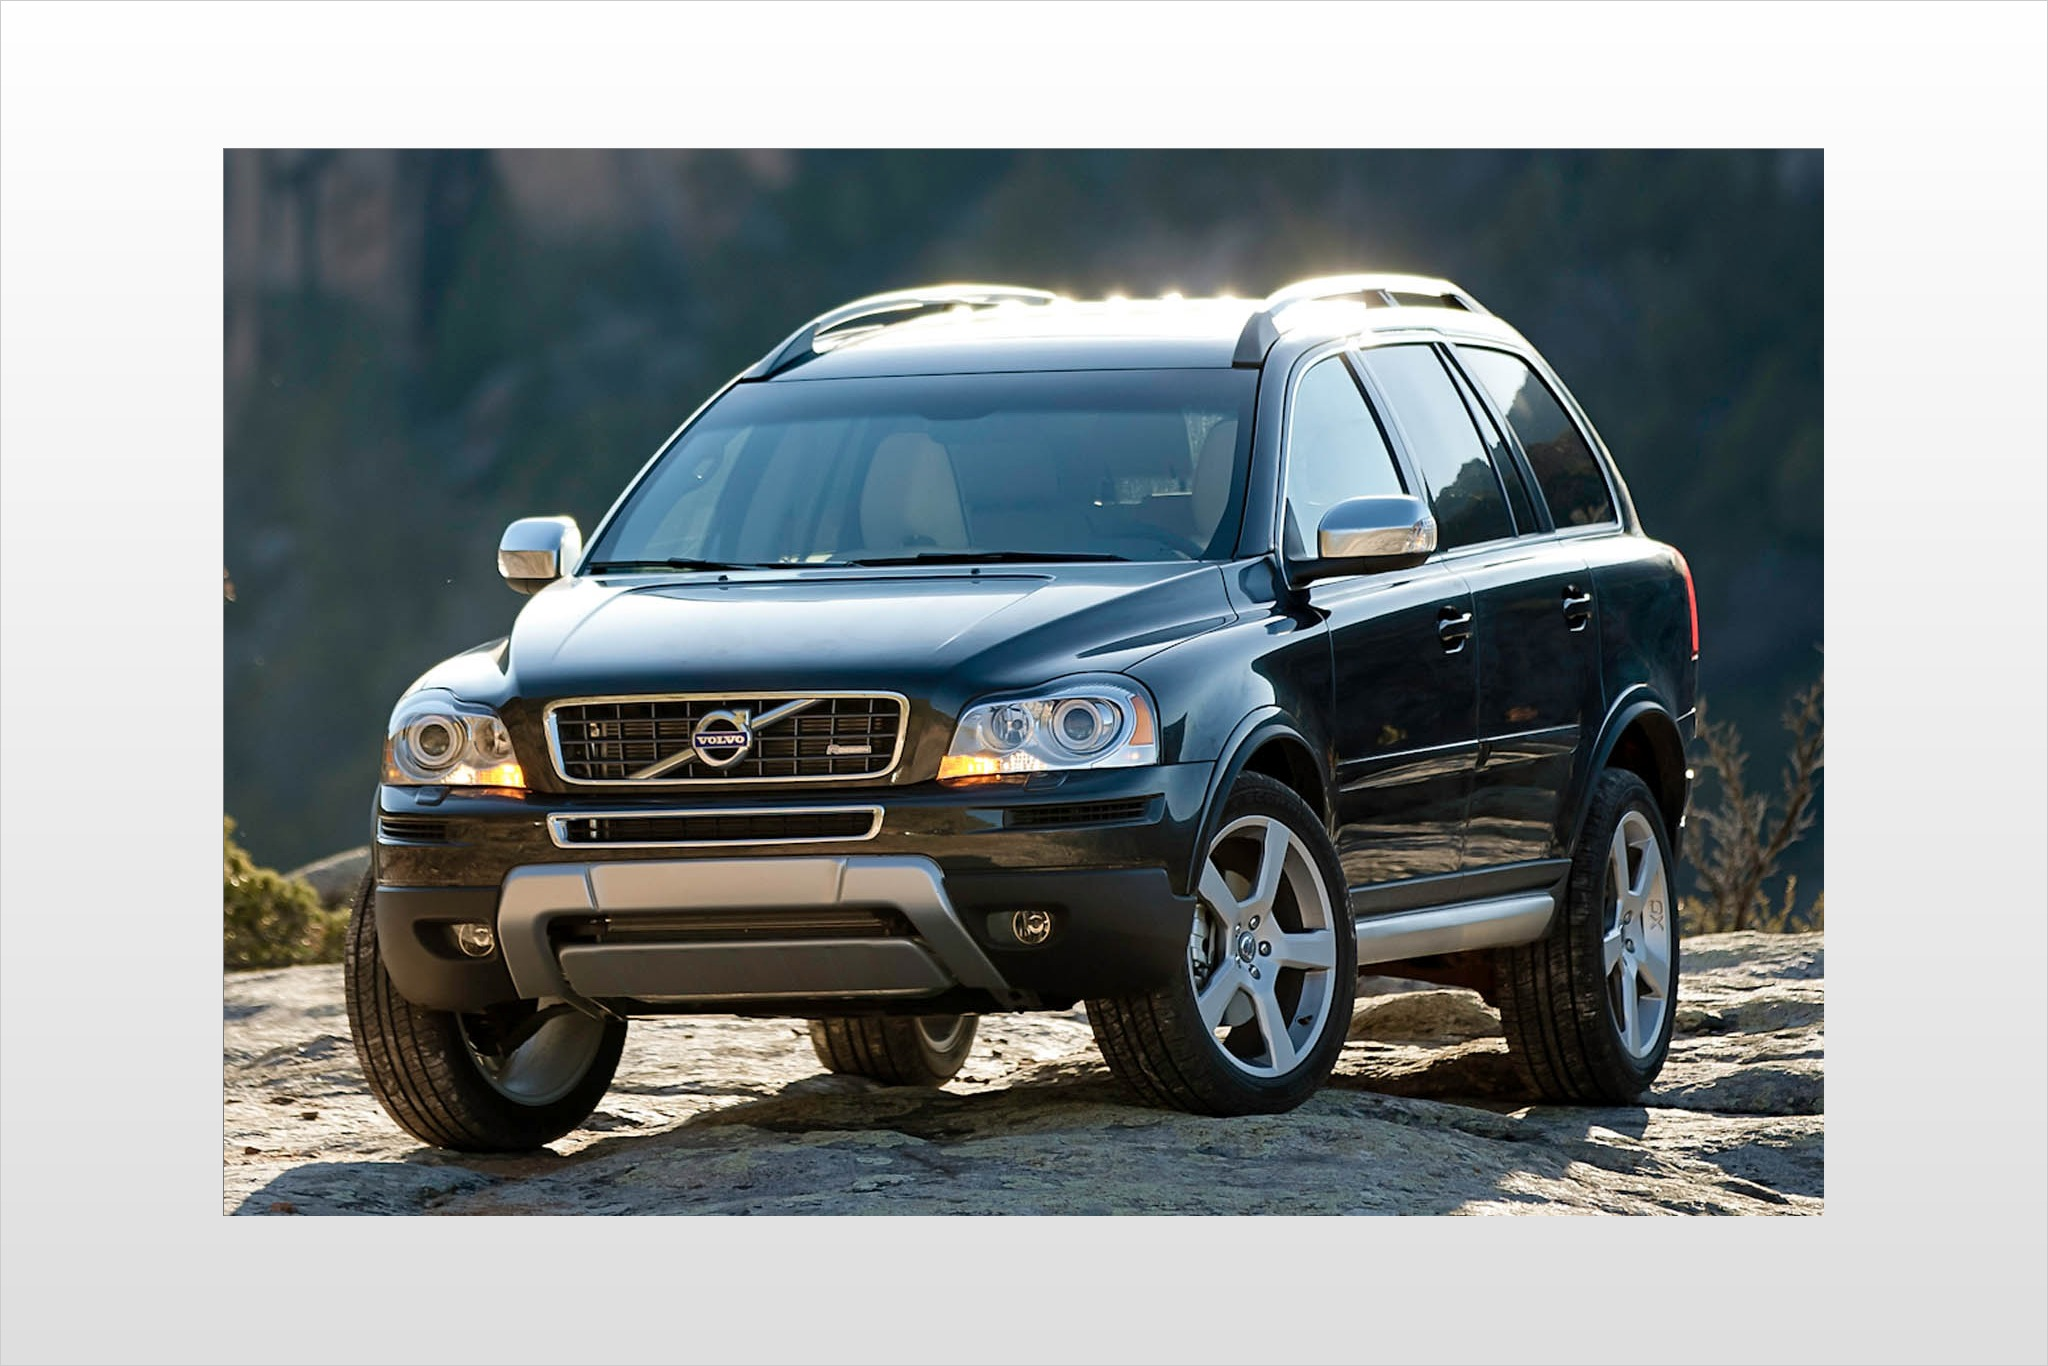 2014 volvo xc90 image 2. Black Bedroom Furniture Sets. Home Design Ideas